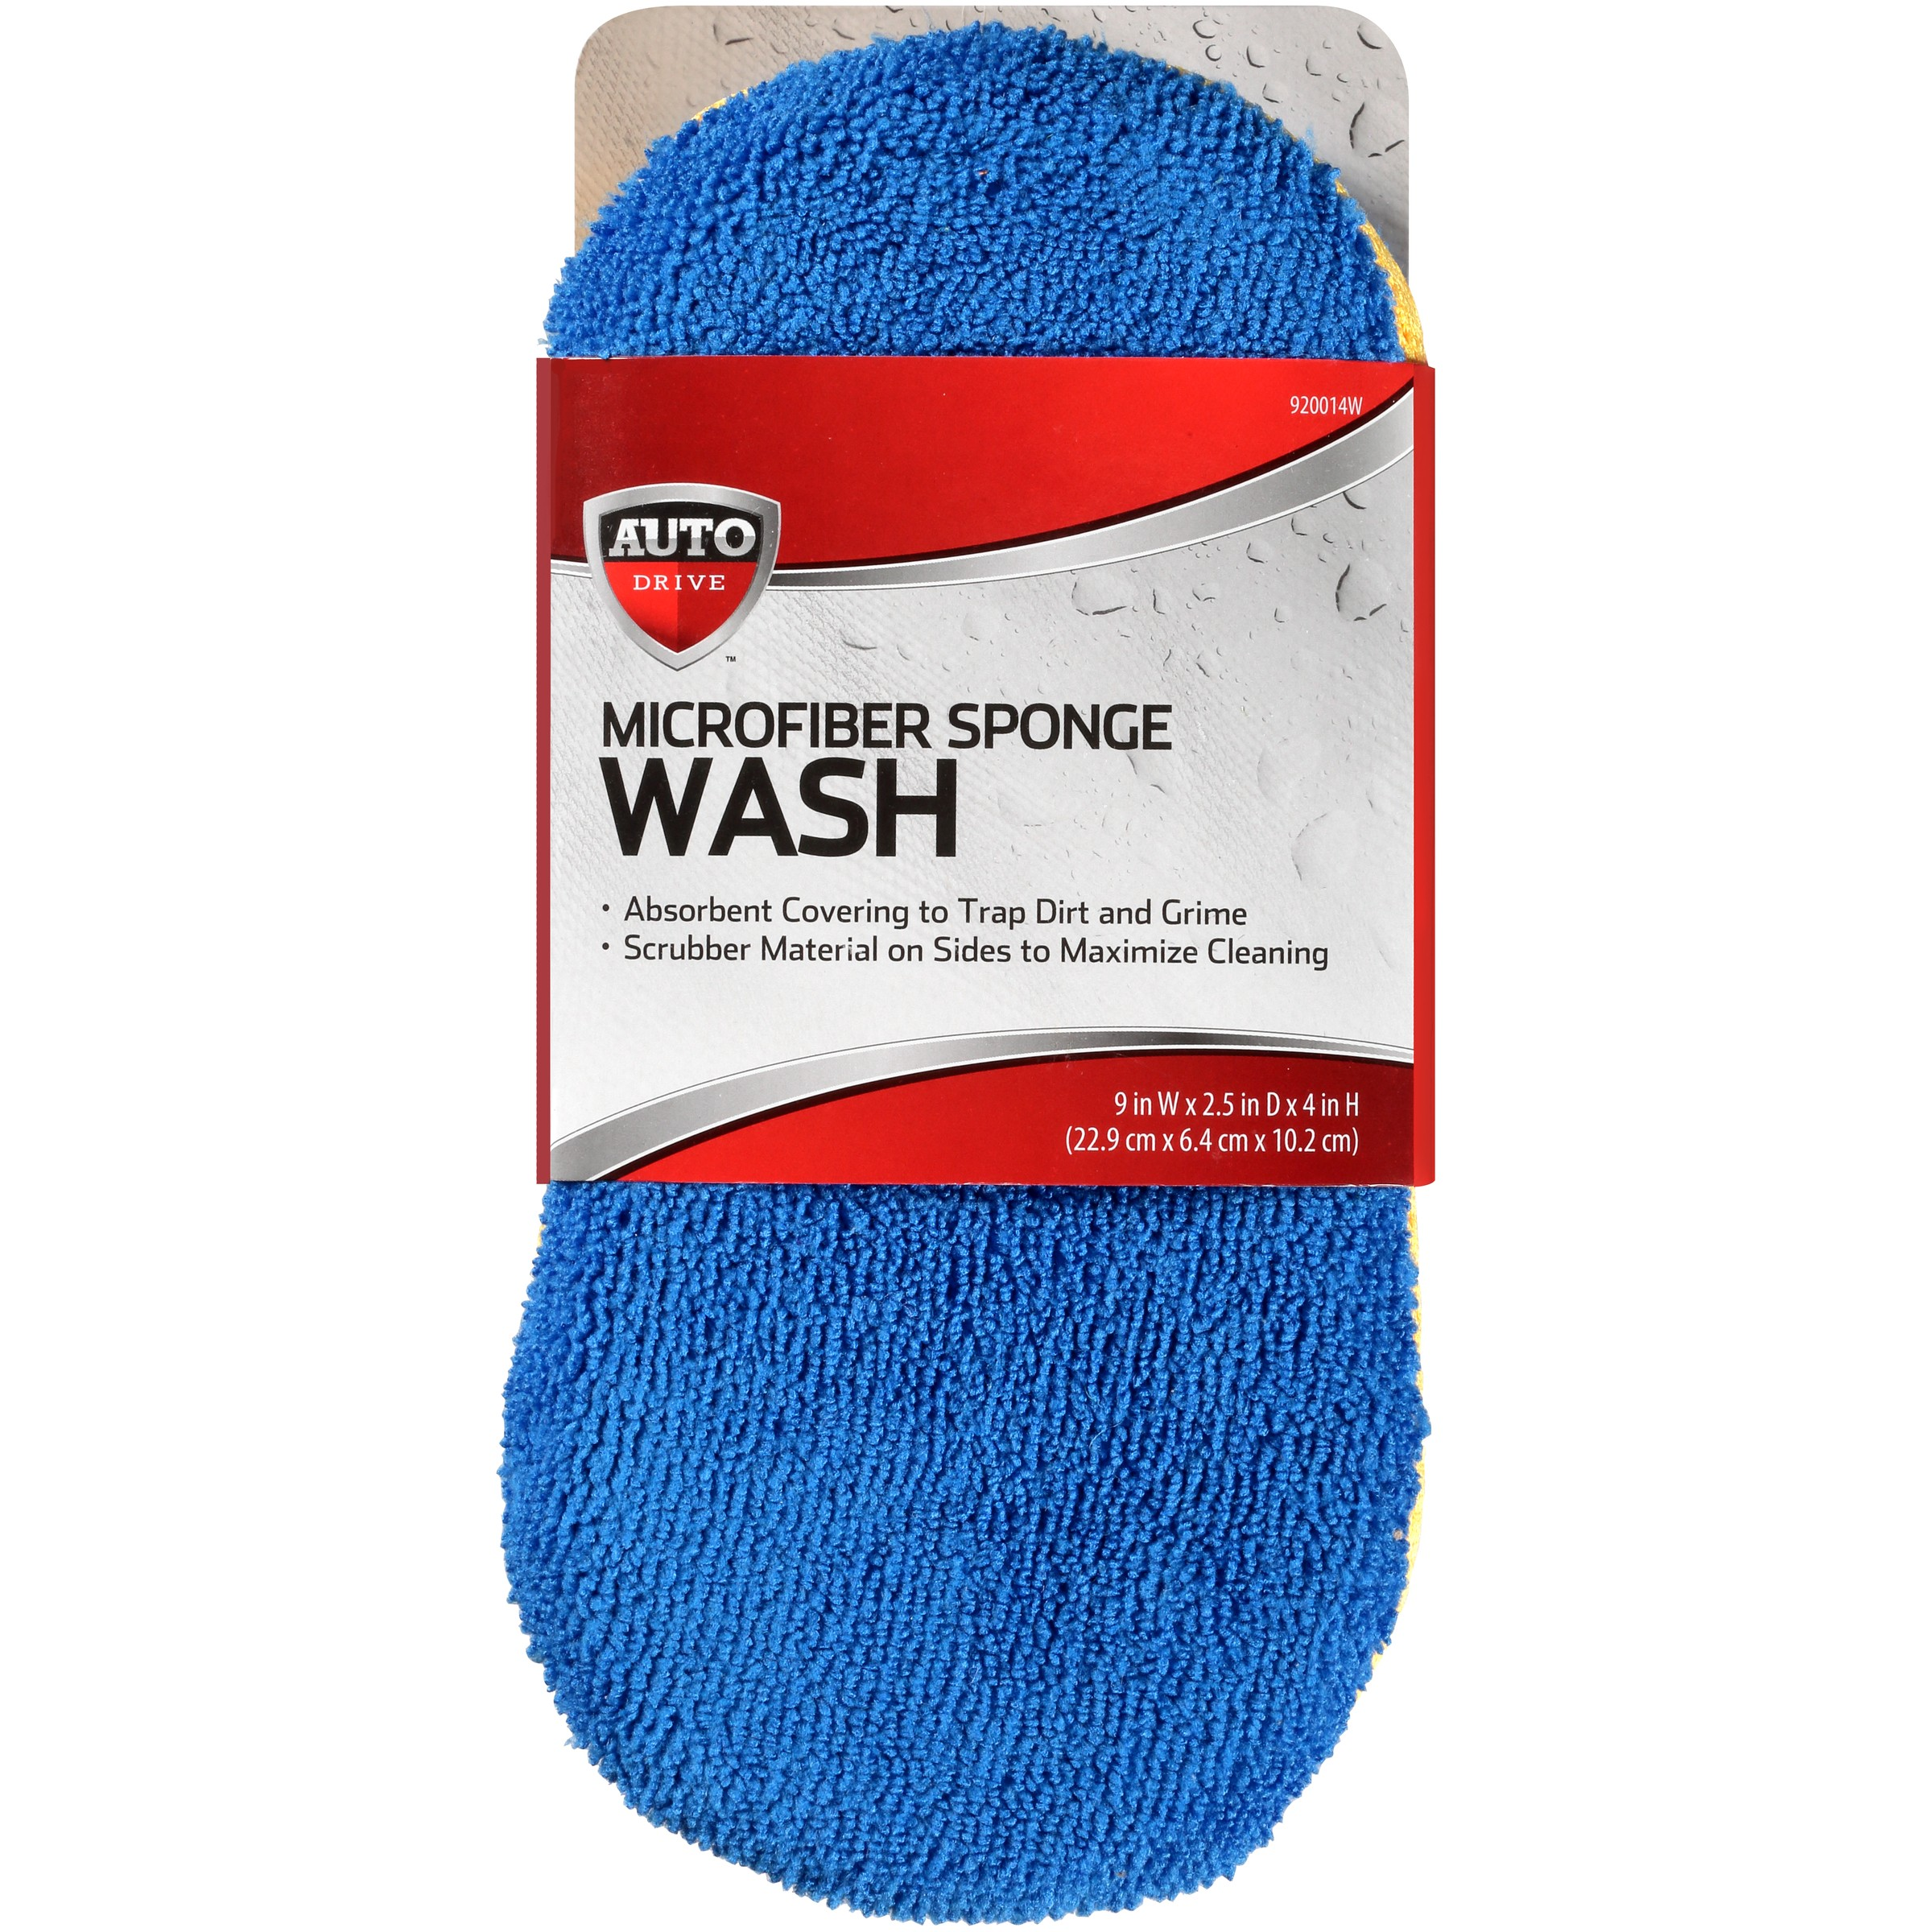 Auto Drive Car Wash Microfiber Sponge, Durable Scrubber Material, Great Water Absorbent, Navy Blue